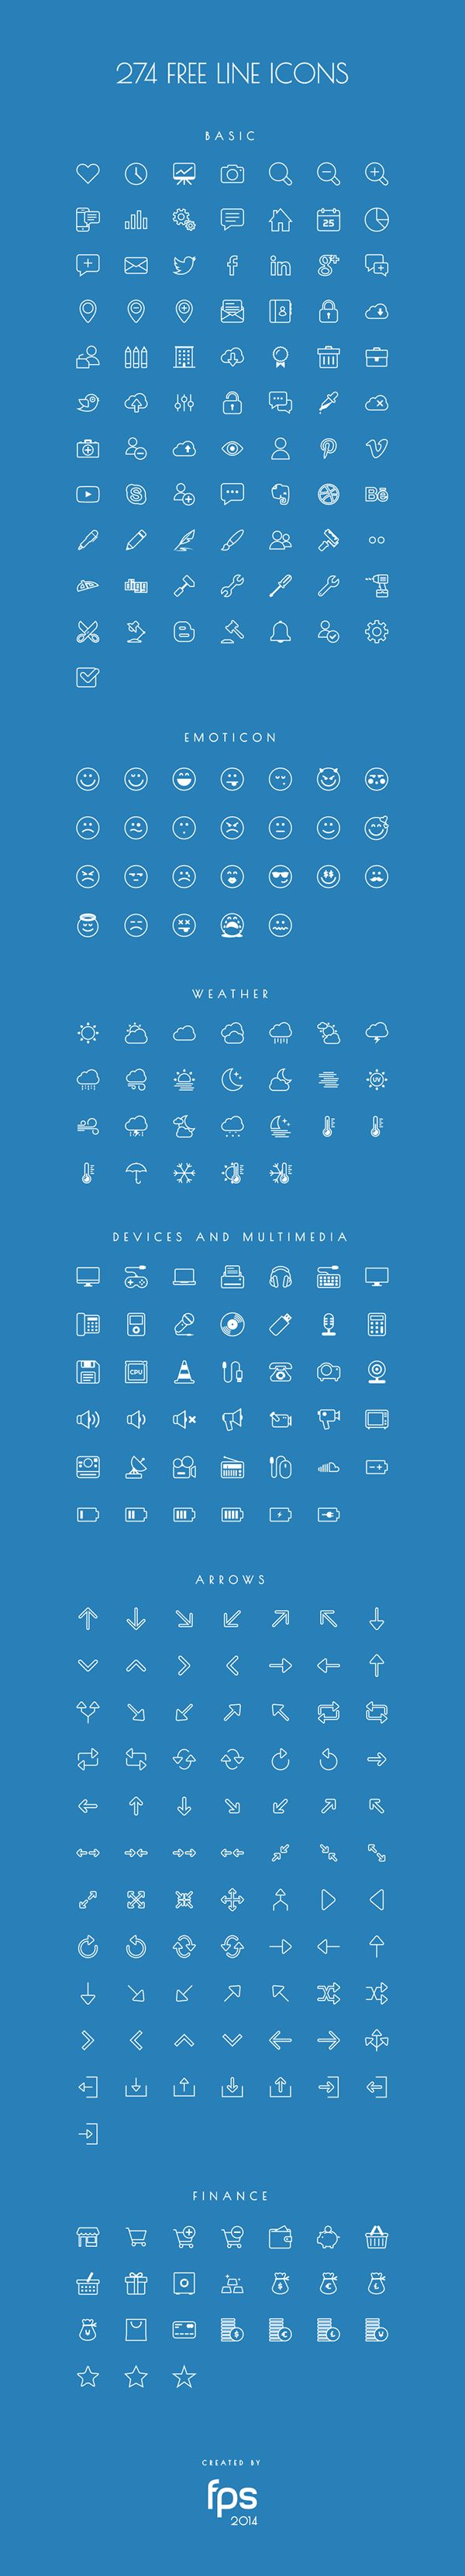 in the pack you can find icons in pdf svg eps png formats and finally as an icon font free for personal and commercial